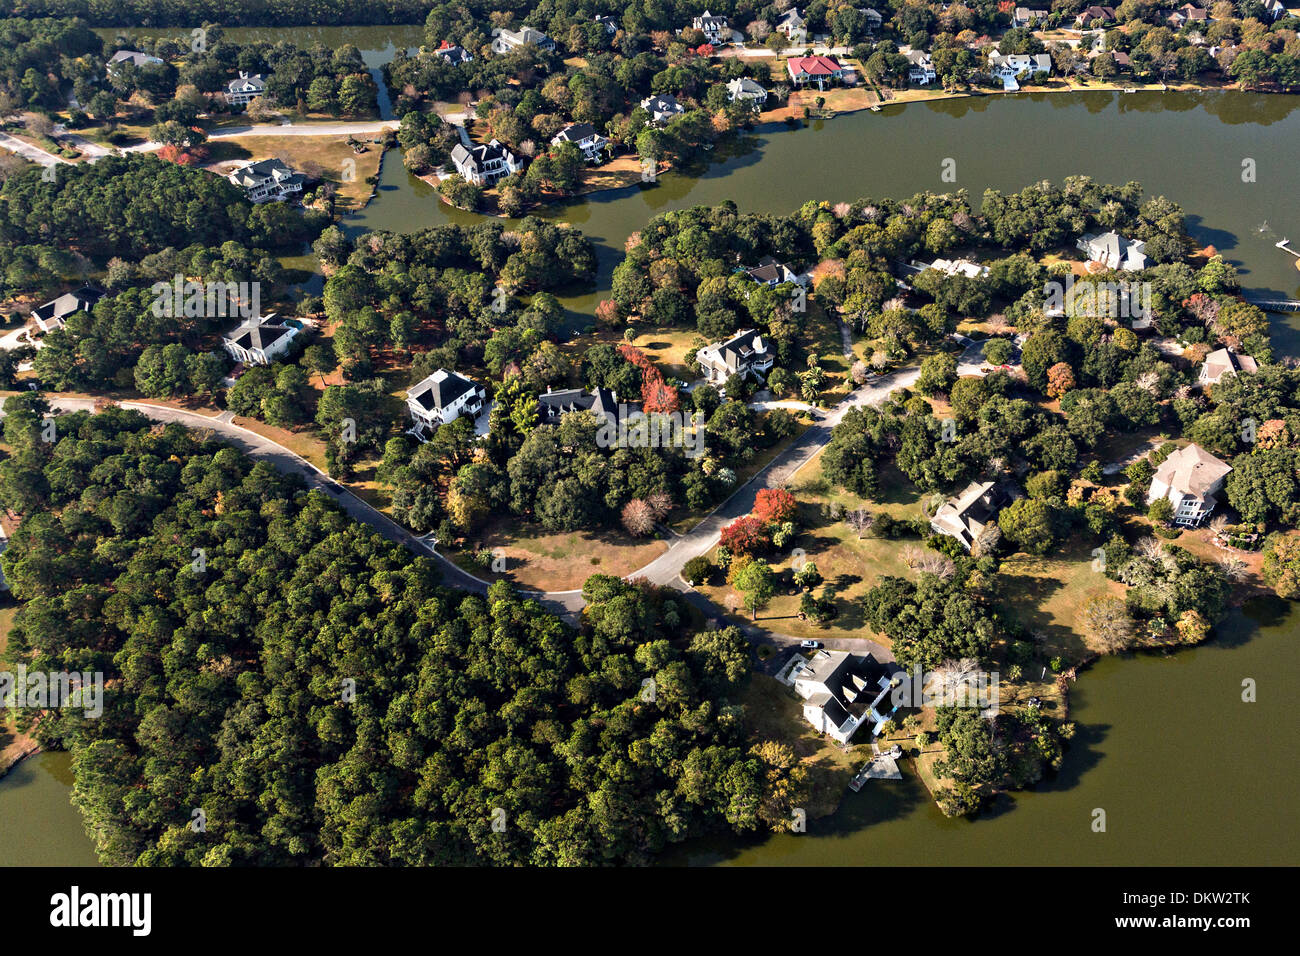 Aerial view of homes in Ravens Run development in Mt Pleasant, SC. - Stock Image